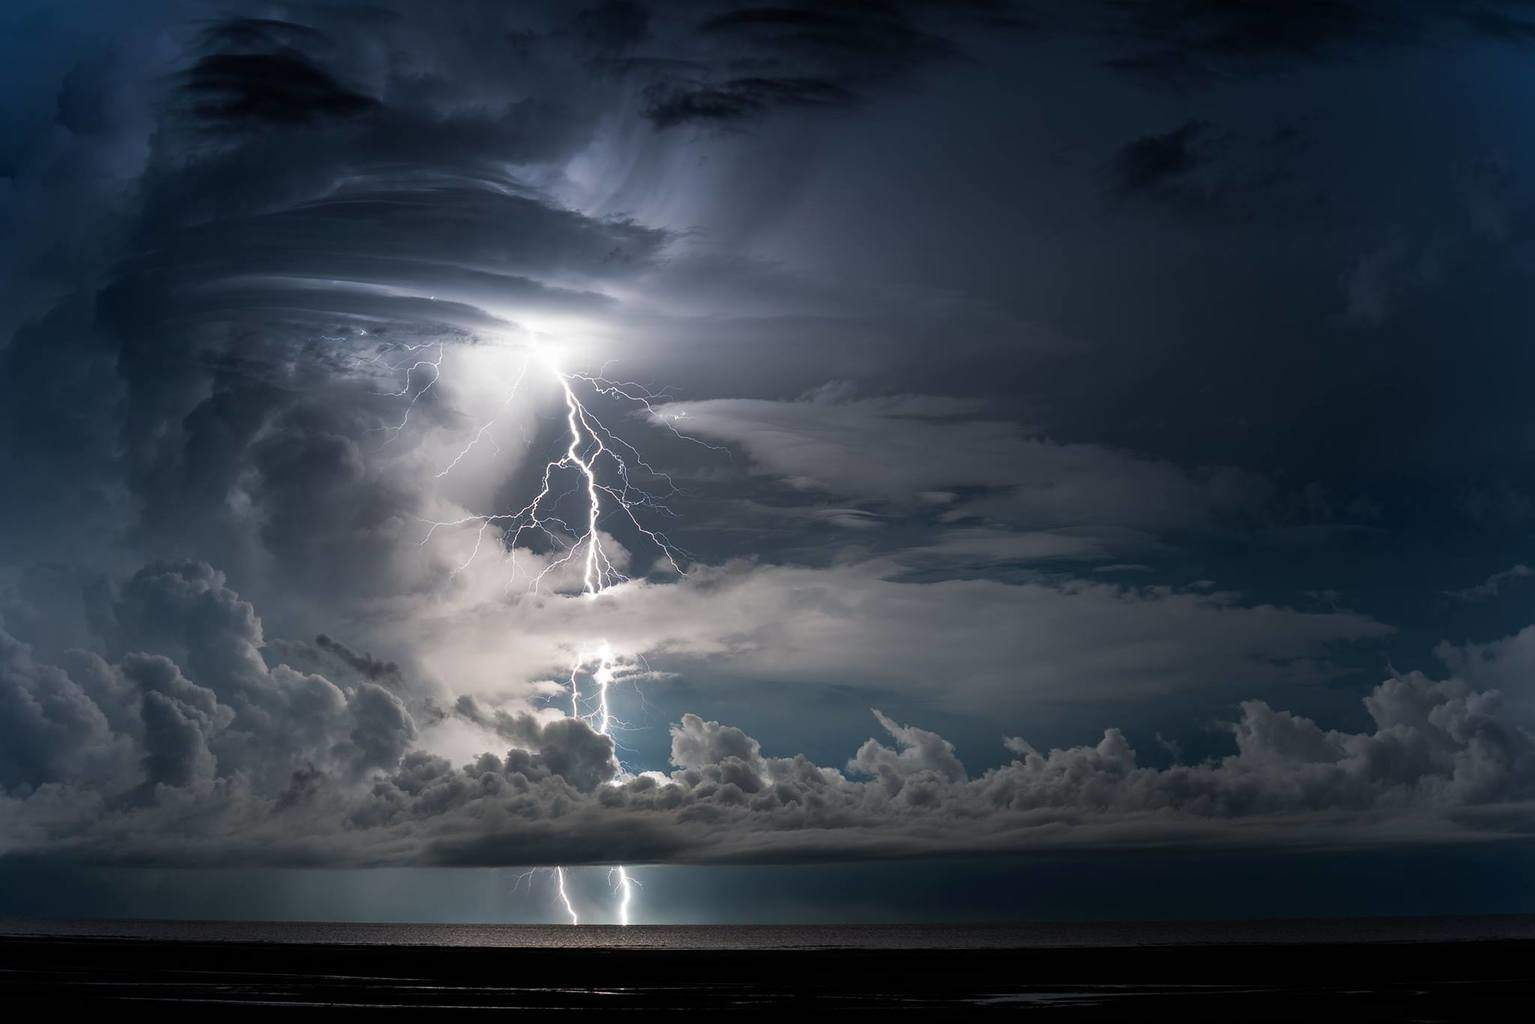 Hurry up build up, we want lightning. This was taken at Lee Point NT Australia around 4am.